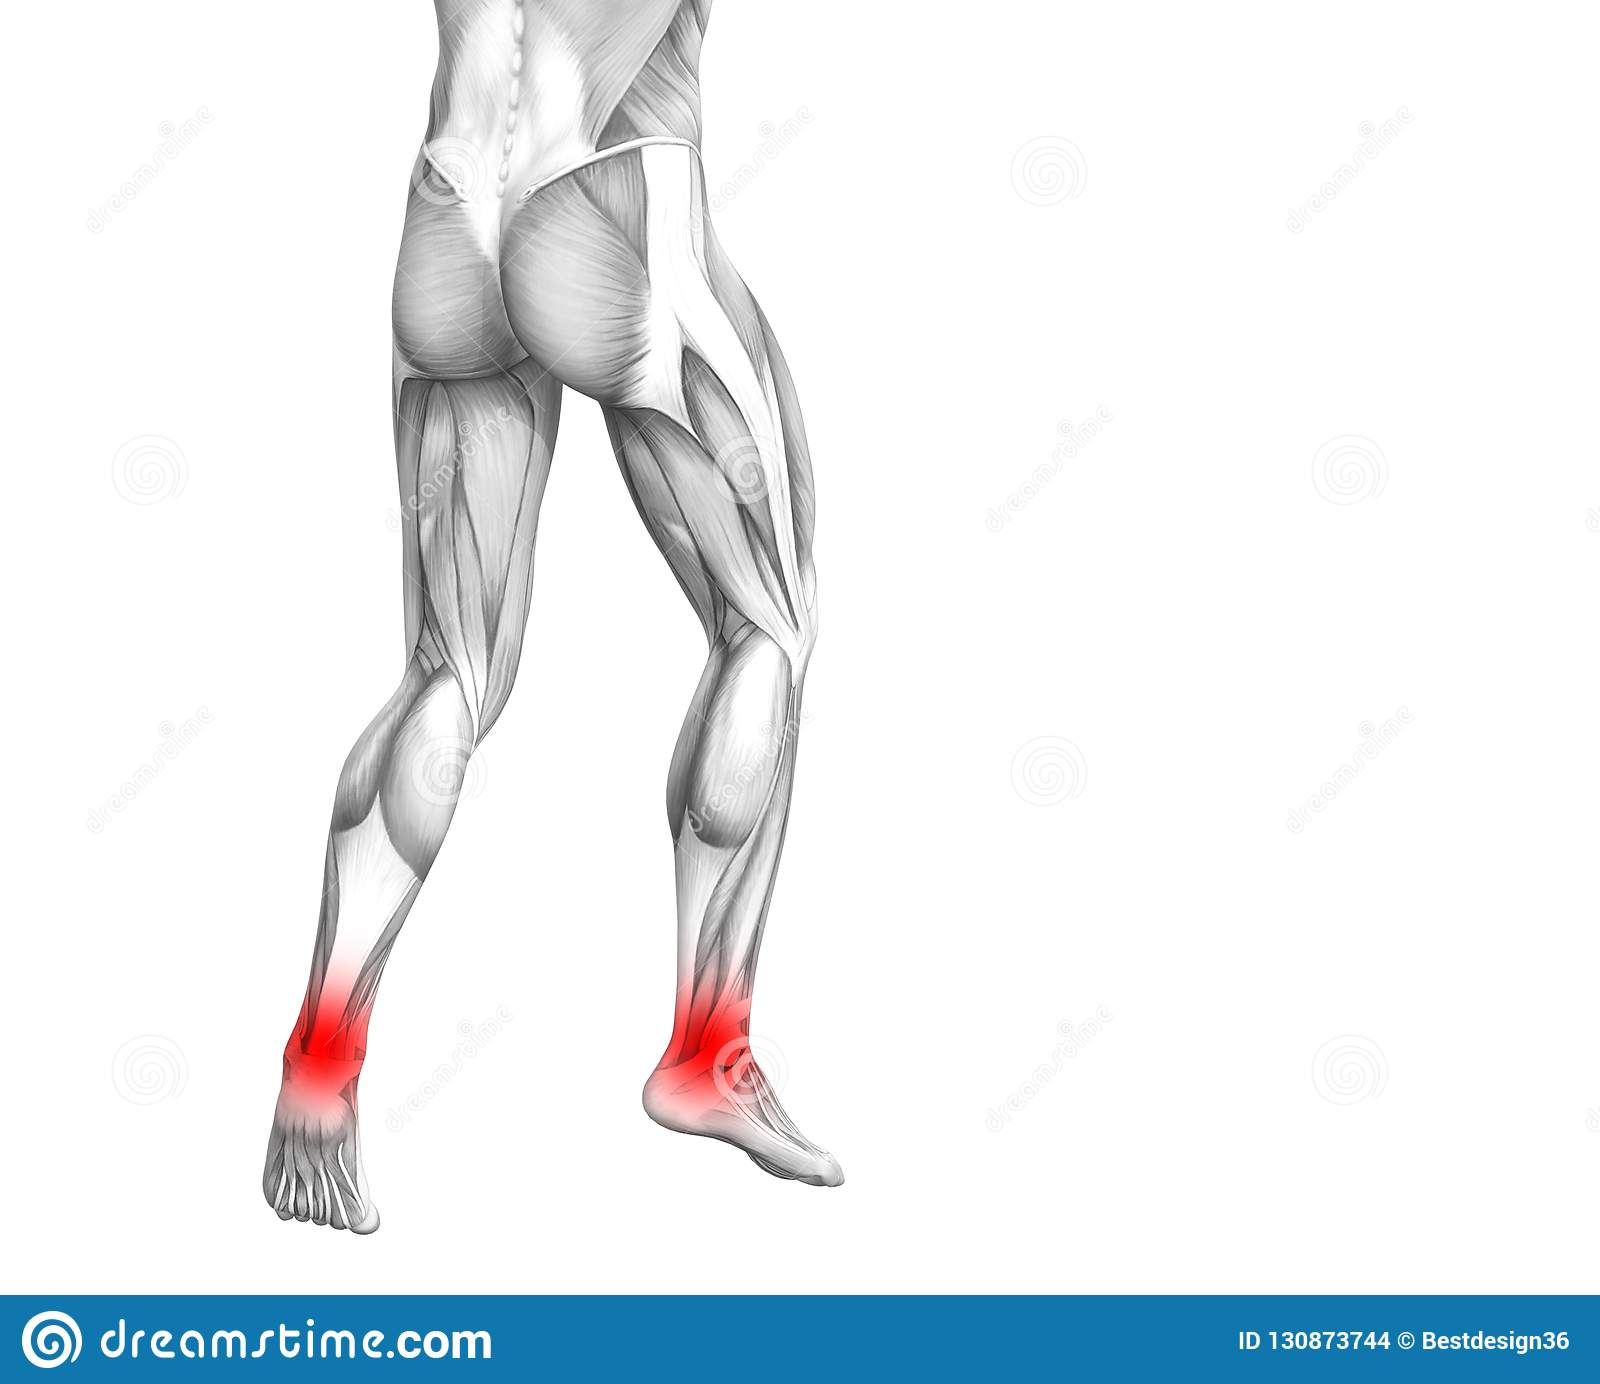 Ankle Human Anatomy With Articular Joint Pain Stock Illustration